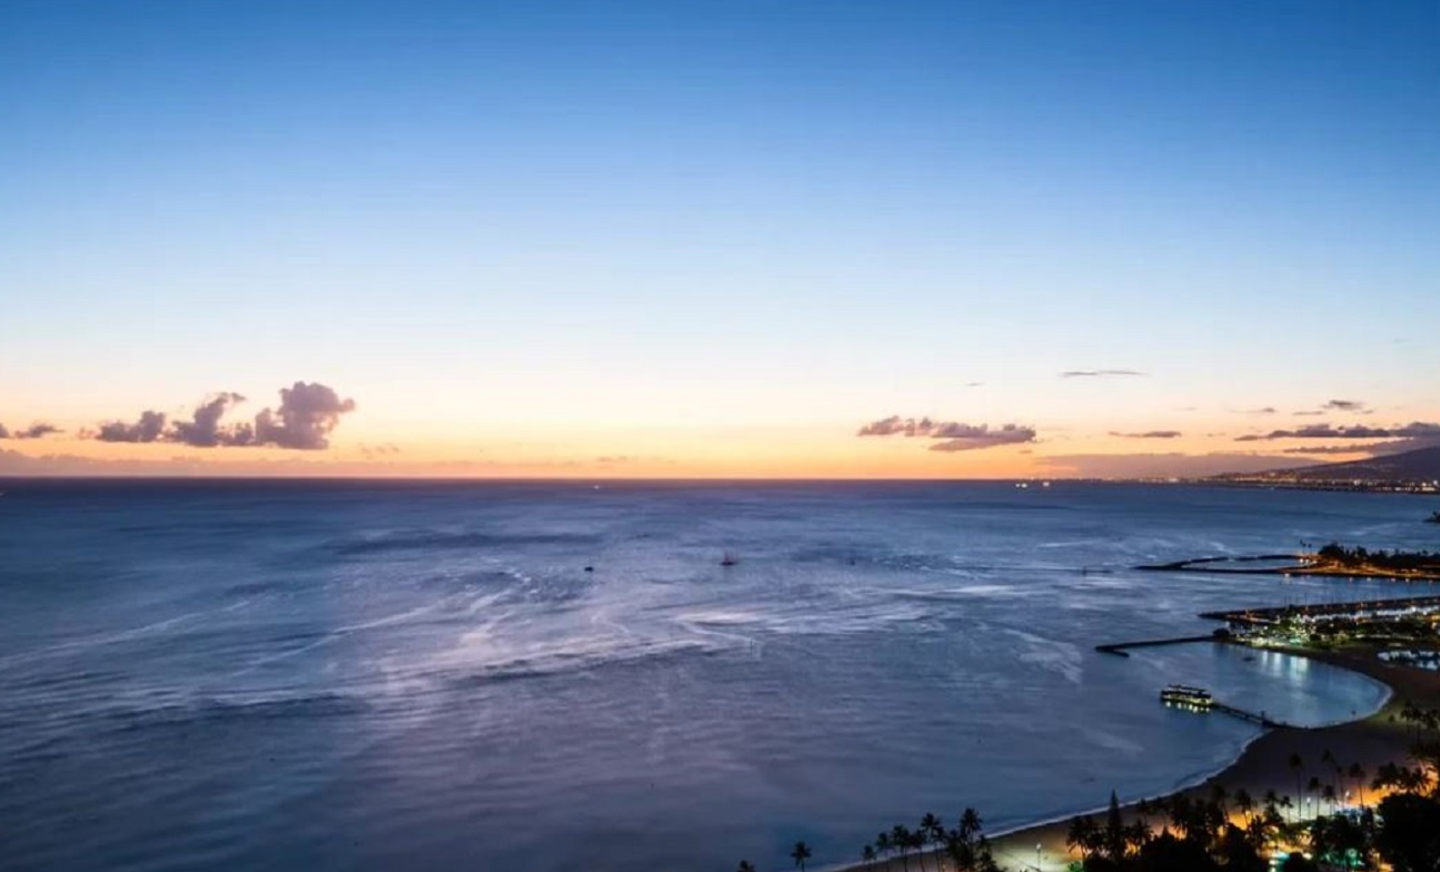 Hotels Waikiki - Beach & Ocean at Sunset